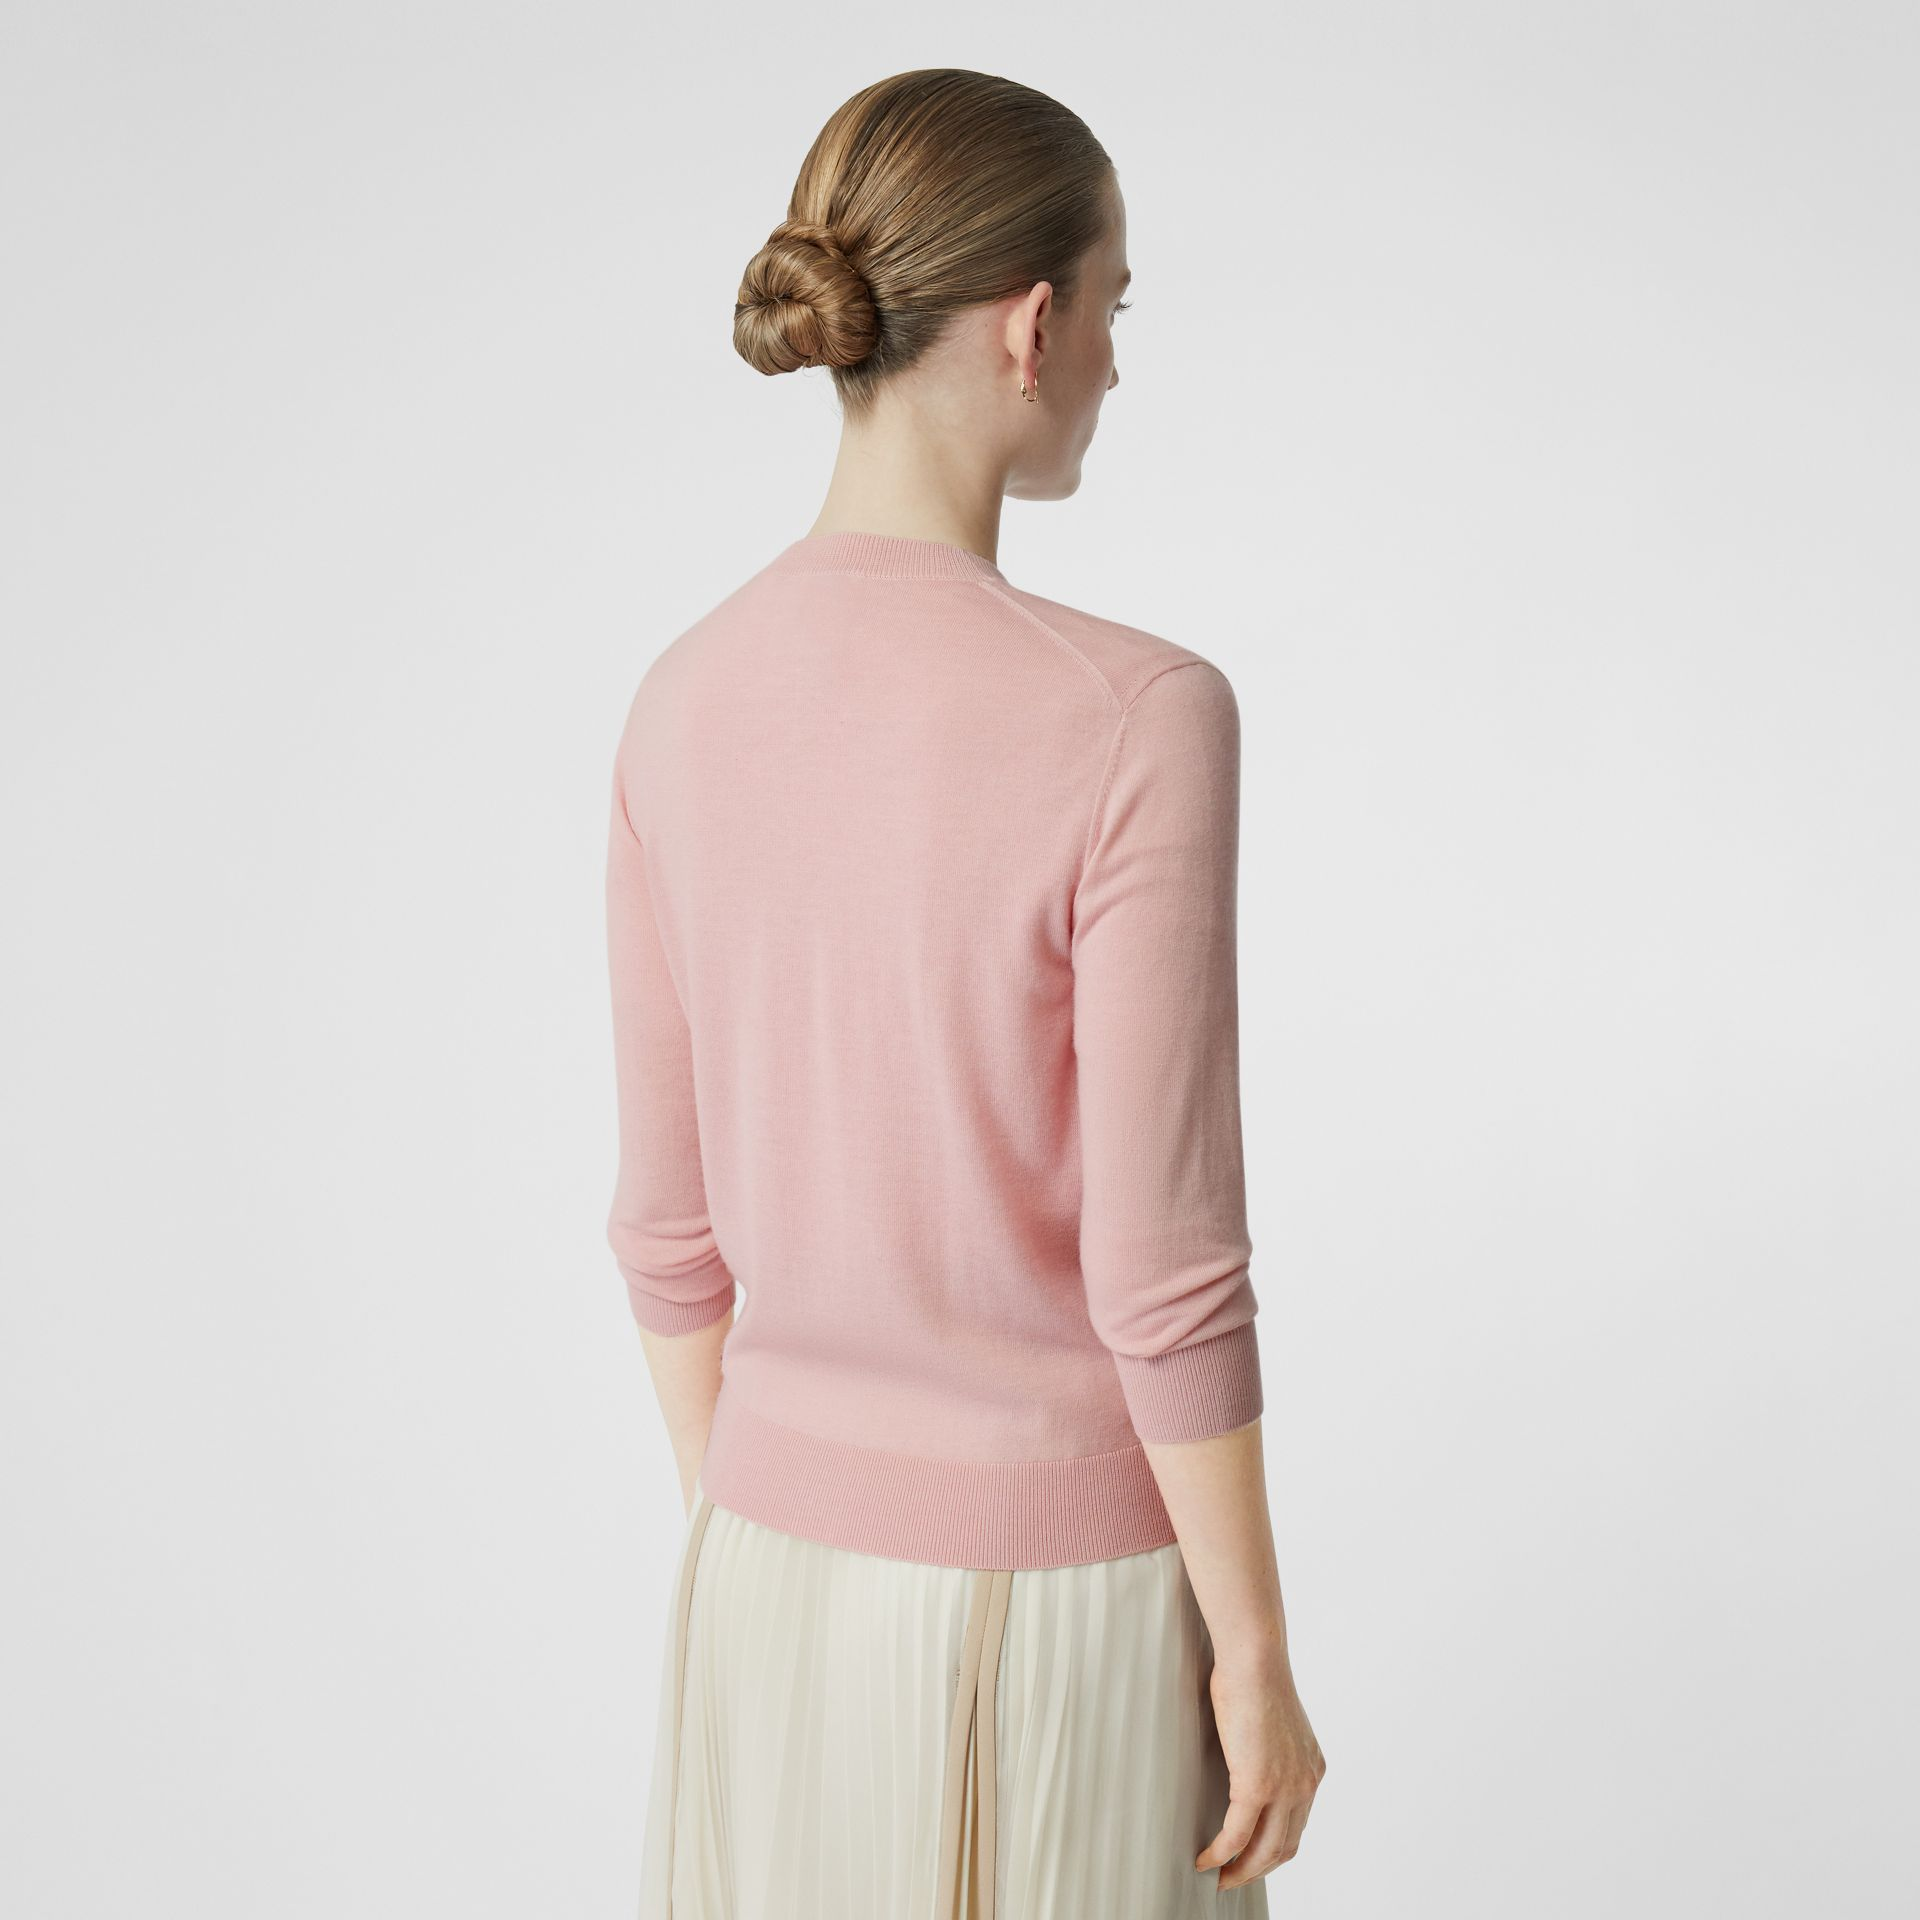 Monogram Motif Cashmere Cardigan in Pink - Women | Burberry Hong Kong - gallery image 2